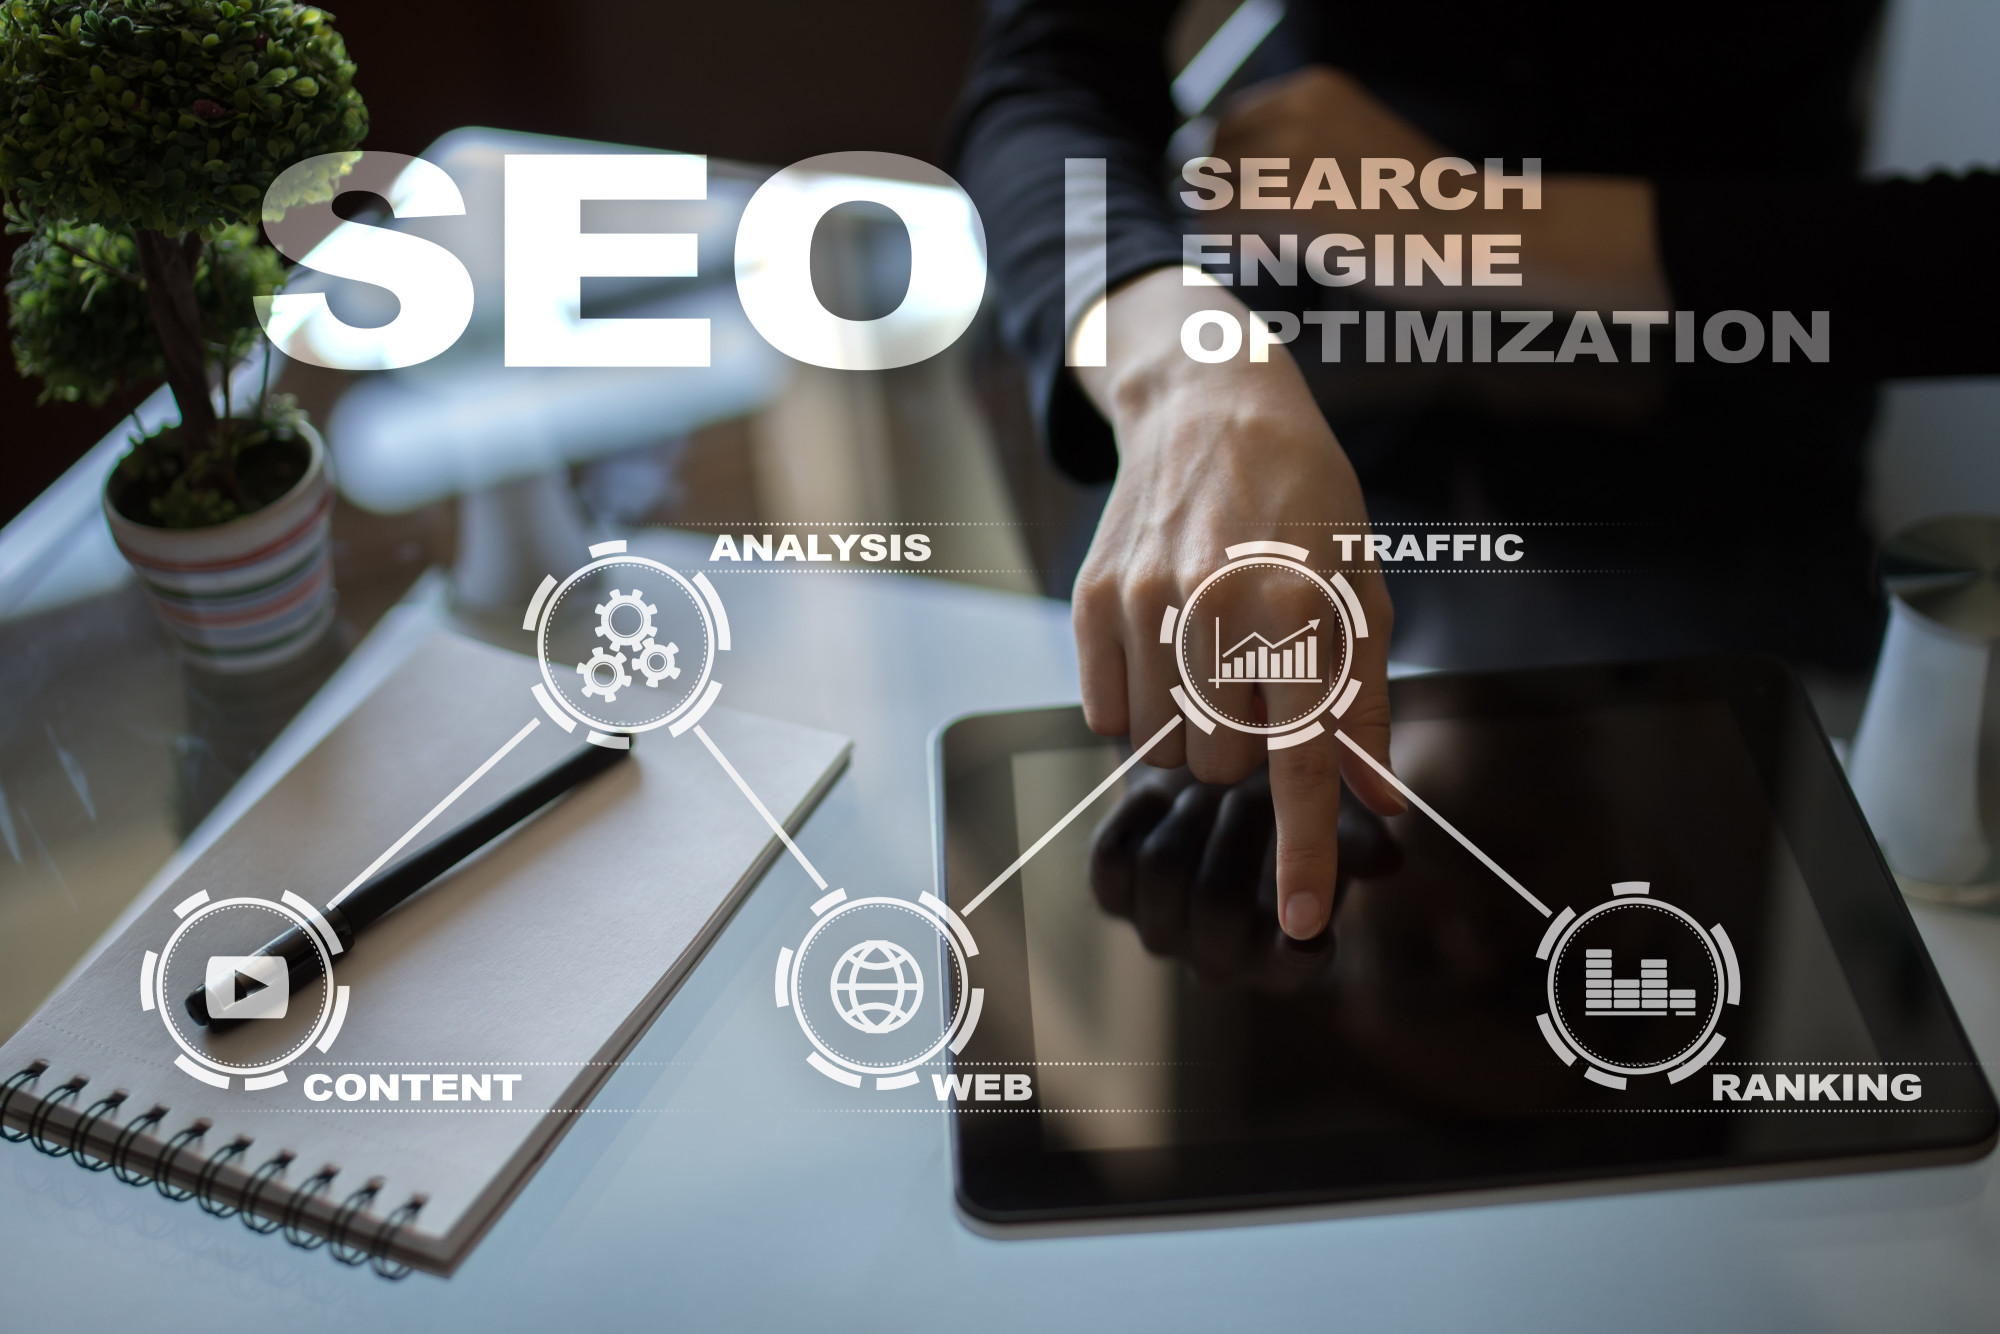 Web Design and SEO: How to Use SEO to Get Your Site Noticed